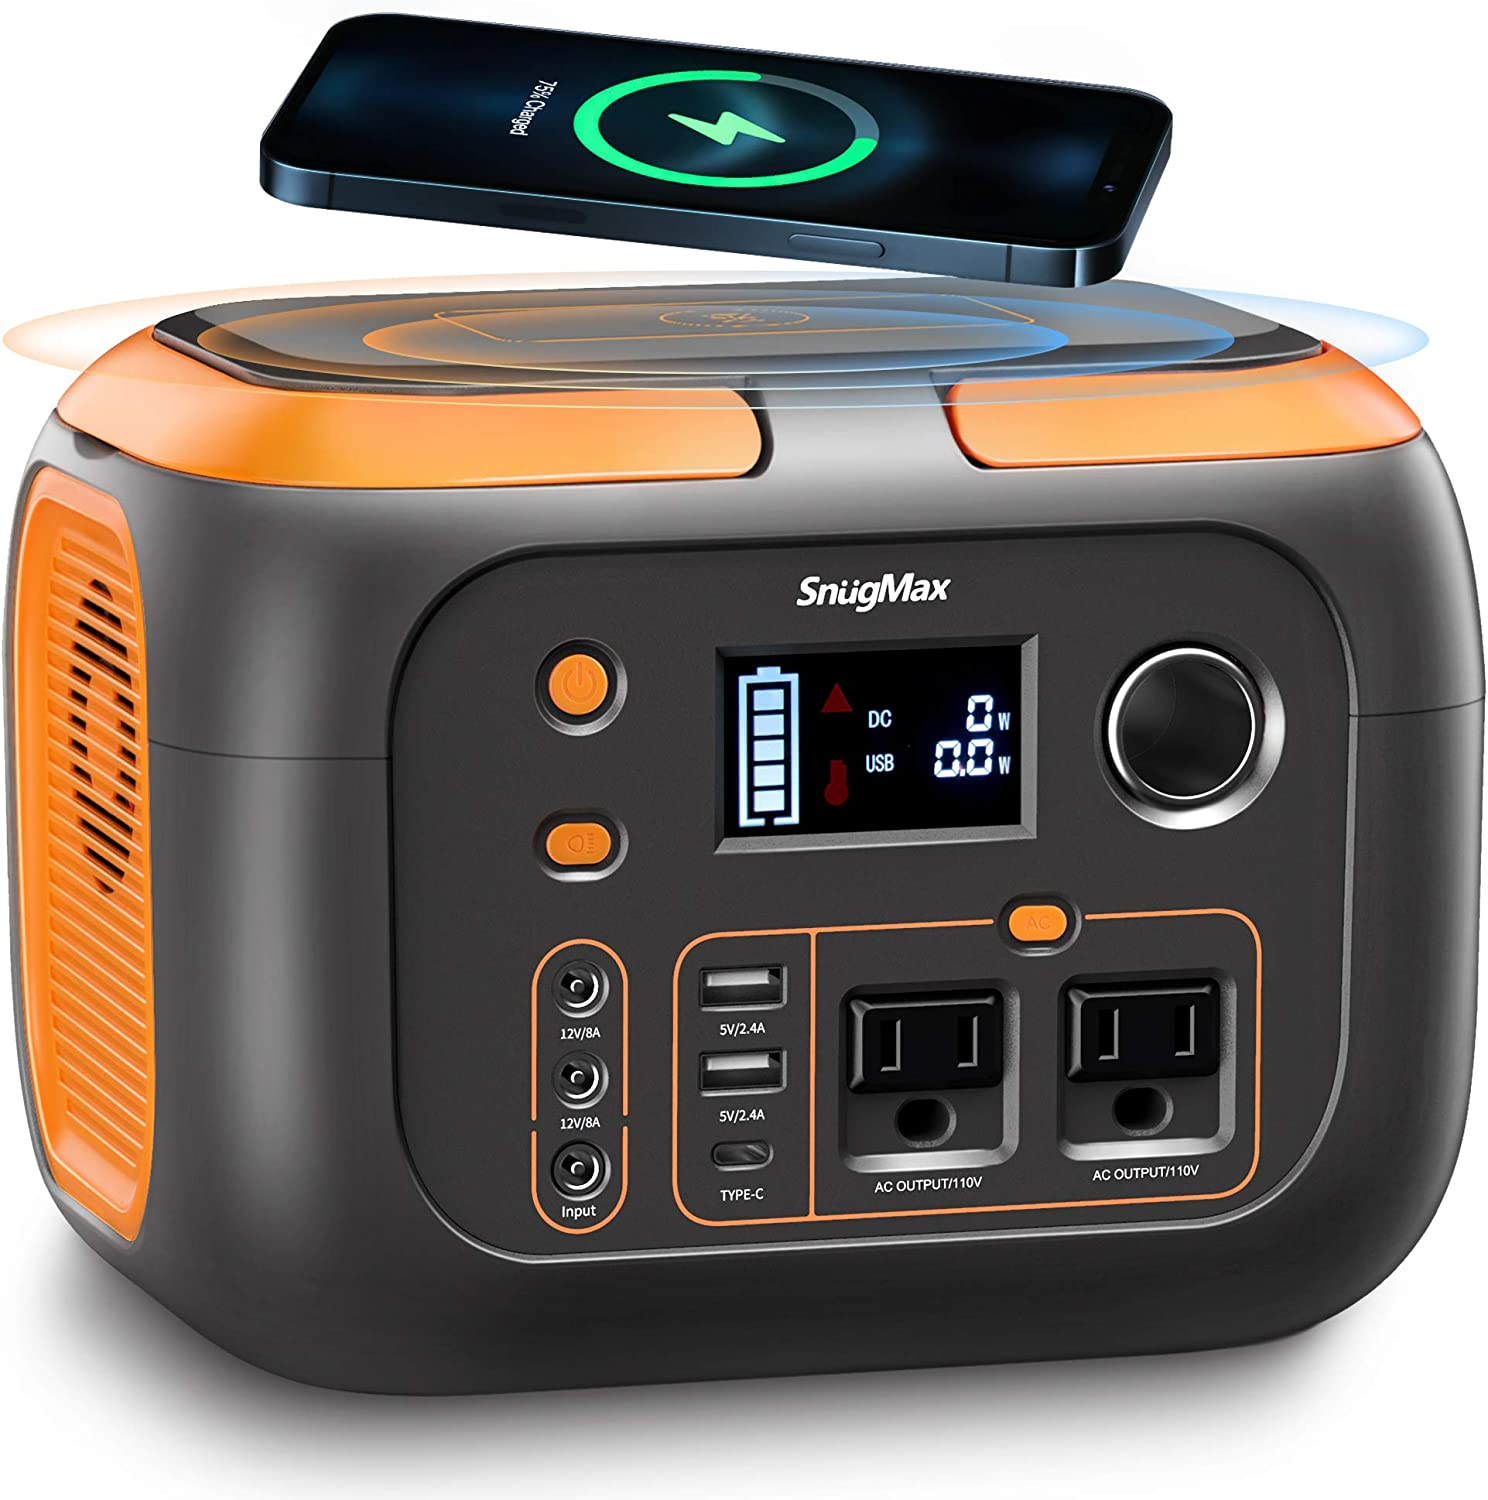 SNUGMAX 350W Portable Power Station, Portable Battery Generator with Pure Sine Wave AC Outlet, Wireless Charging, Portable Solar generators for Camping, Outdoor Adventure, Home Emergency Power Supply